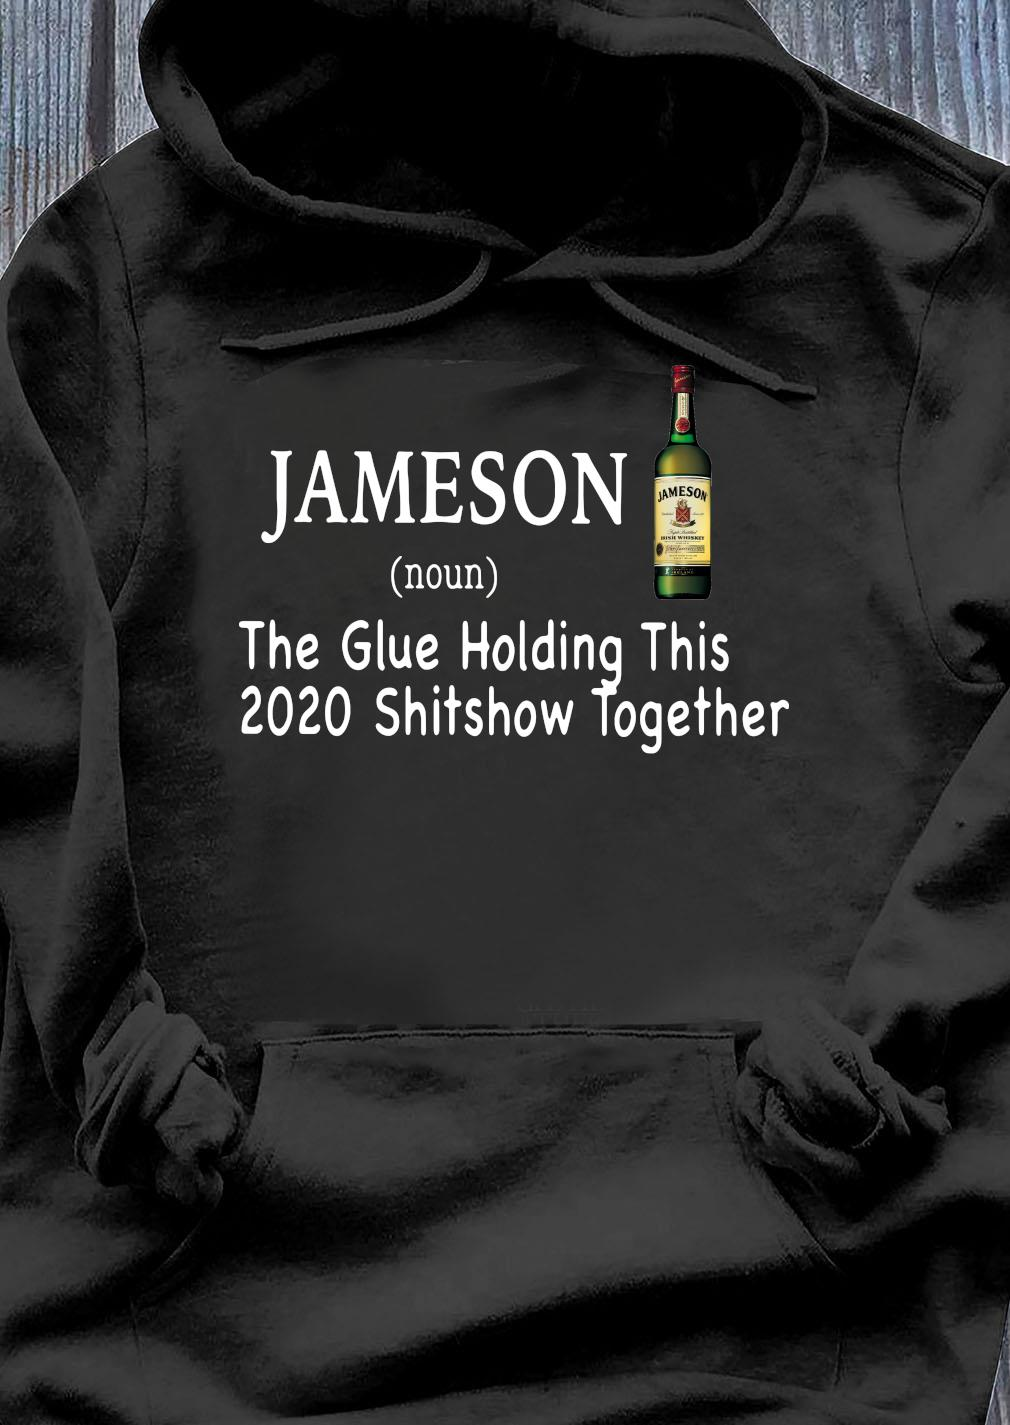 Jameson Noun The Glue Holding This 2020 Shitshow Together Shirt Hoodie